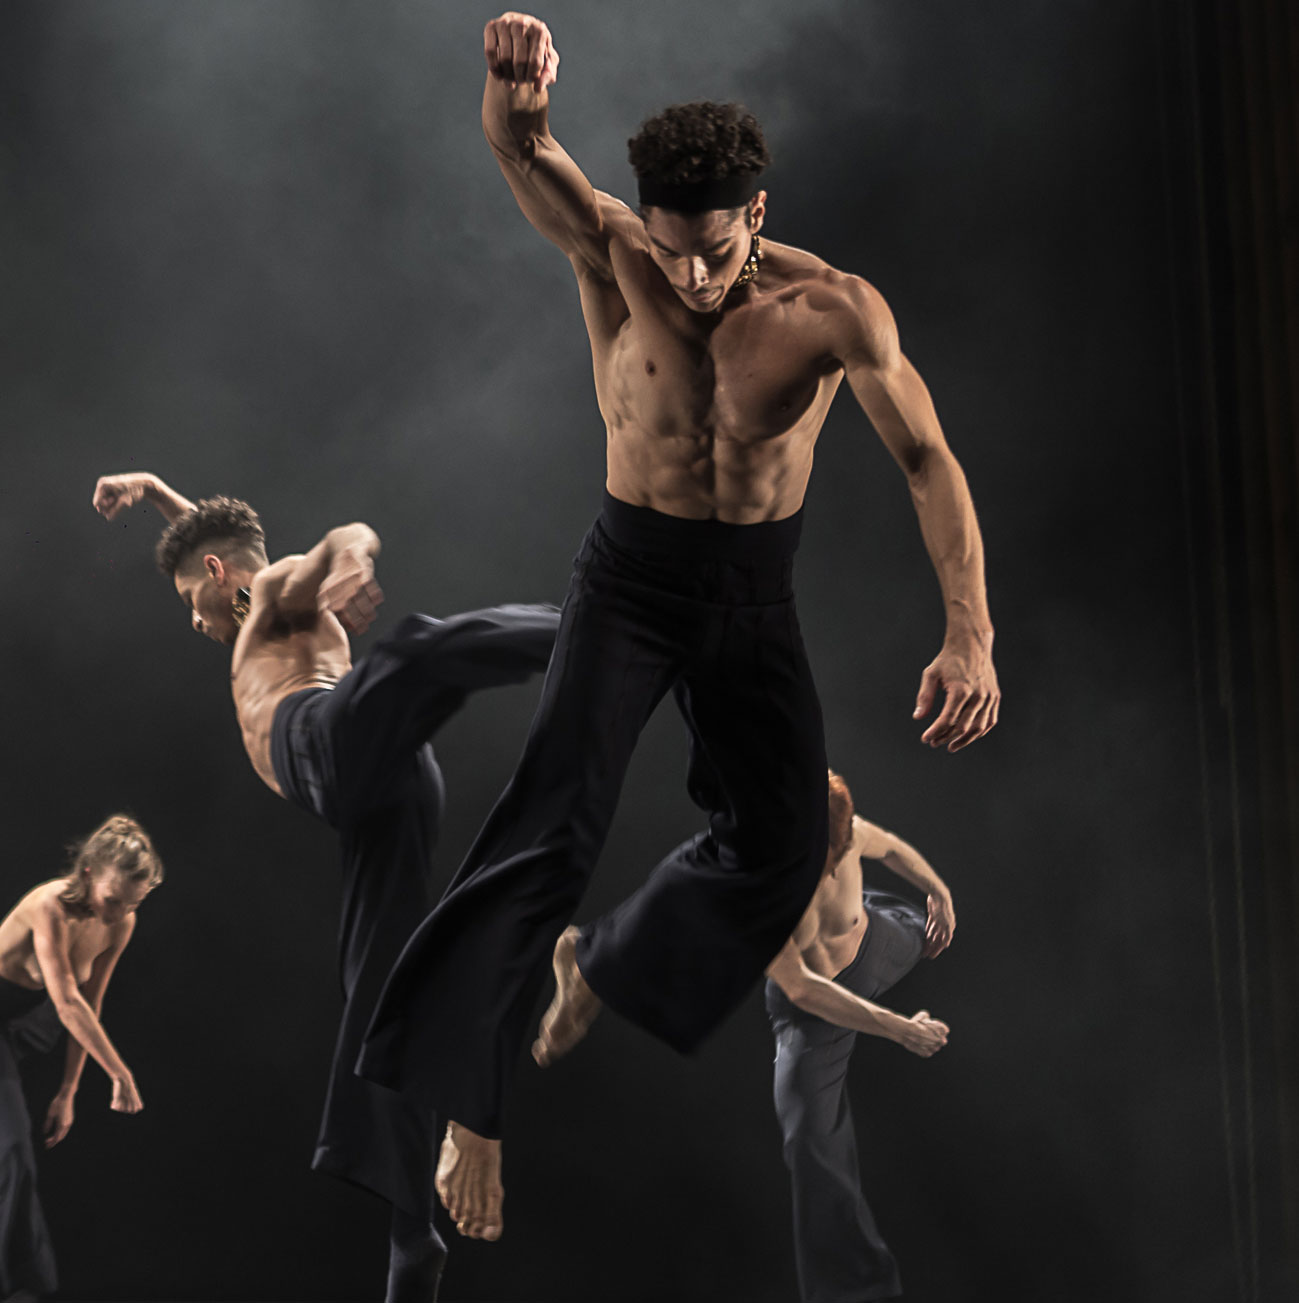 Dance artists from Focus Cia de Danca perform in Still Reich